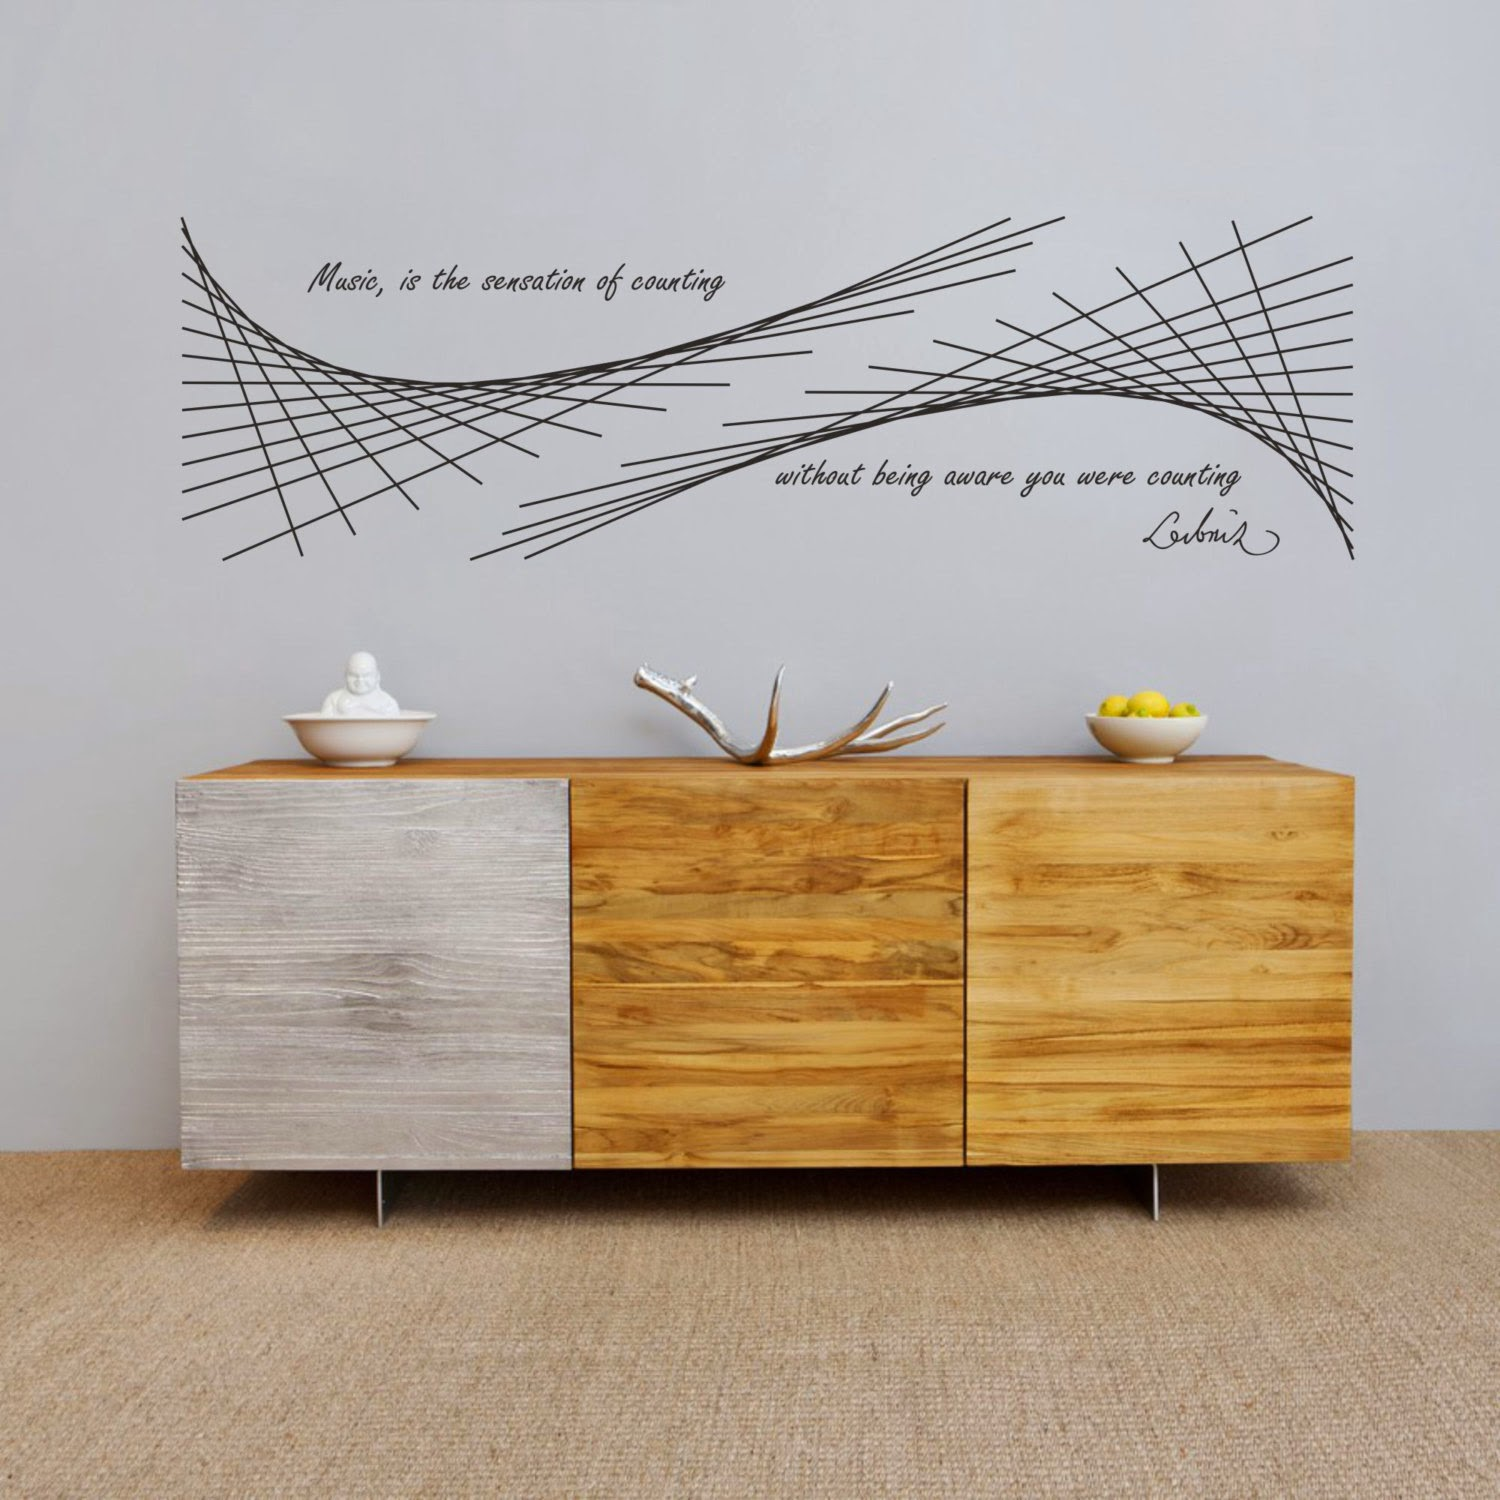 Science Wall Art how to design an educational wall art - science wall decals | cut